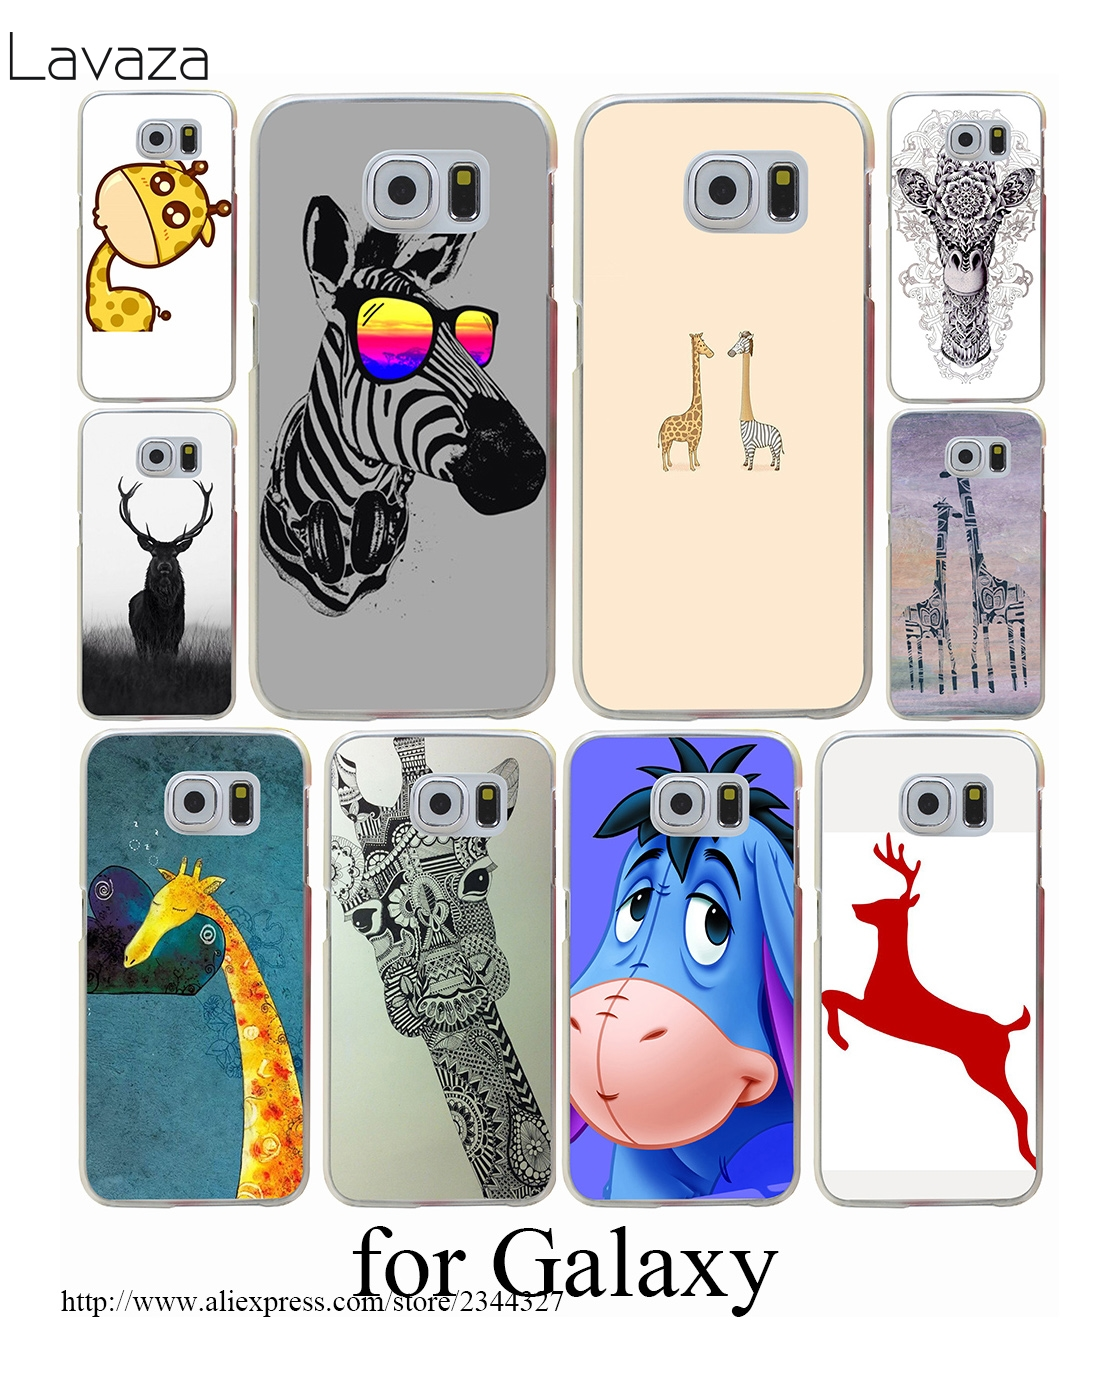 The giraffe bite a thing Hard Transparent Case Cover for Galaxy S3 S4 S5 & Mini S6 S7 Edge Plus Case Cover